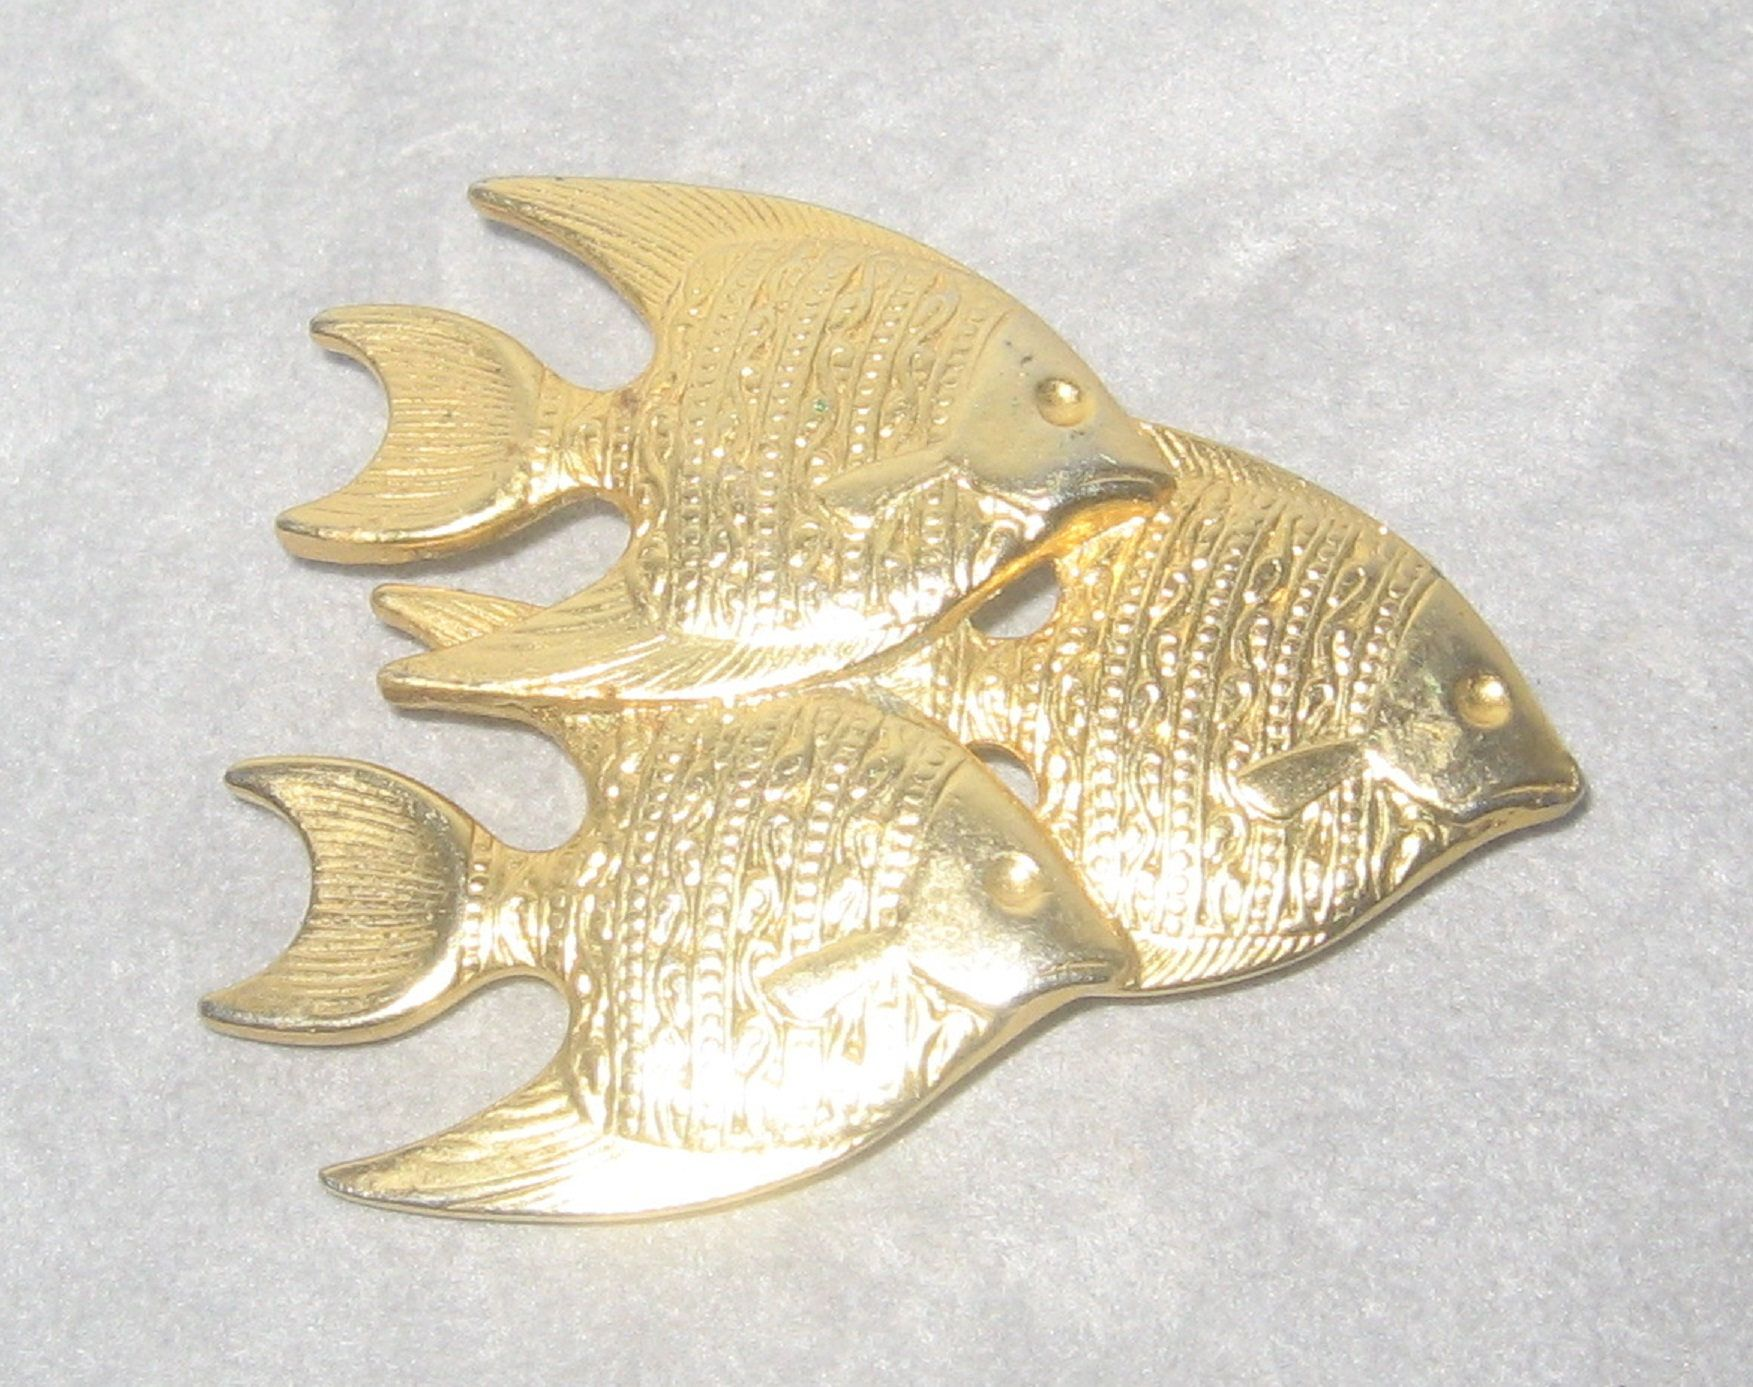 Angel fish lapel pin brooch  Gold toned, pin back closure